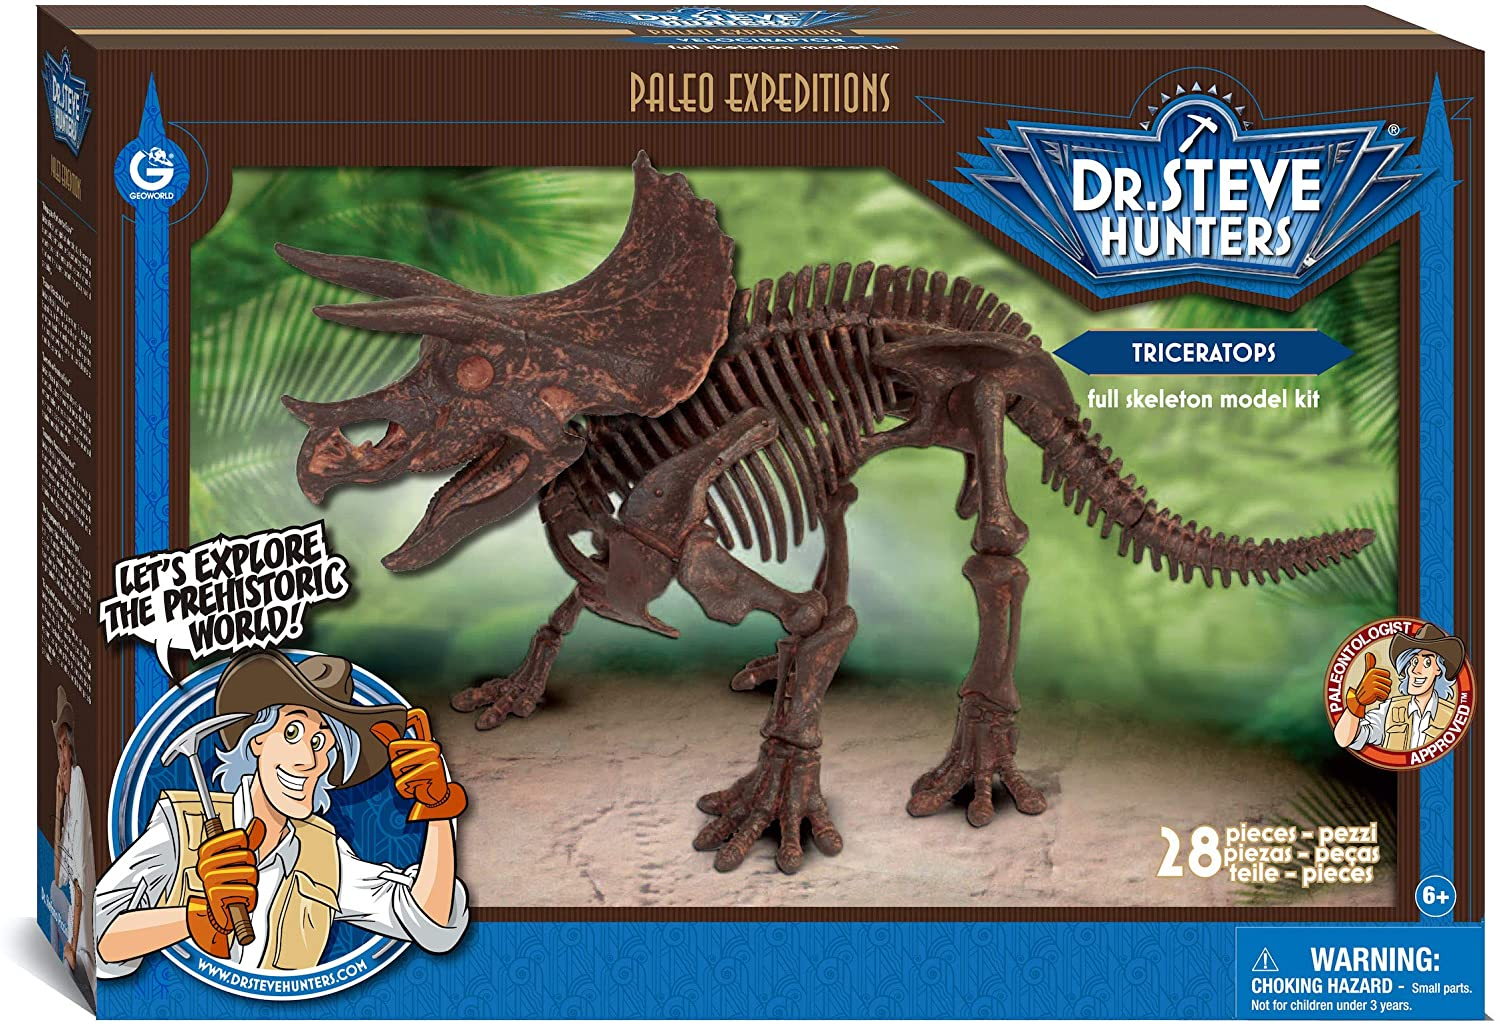 Triceratops skeleton model kit